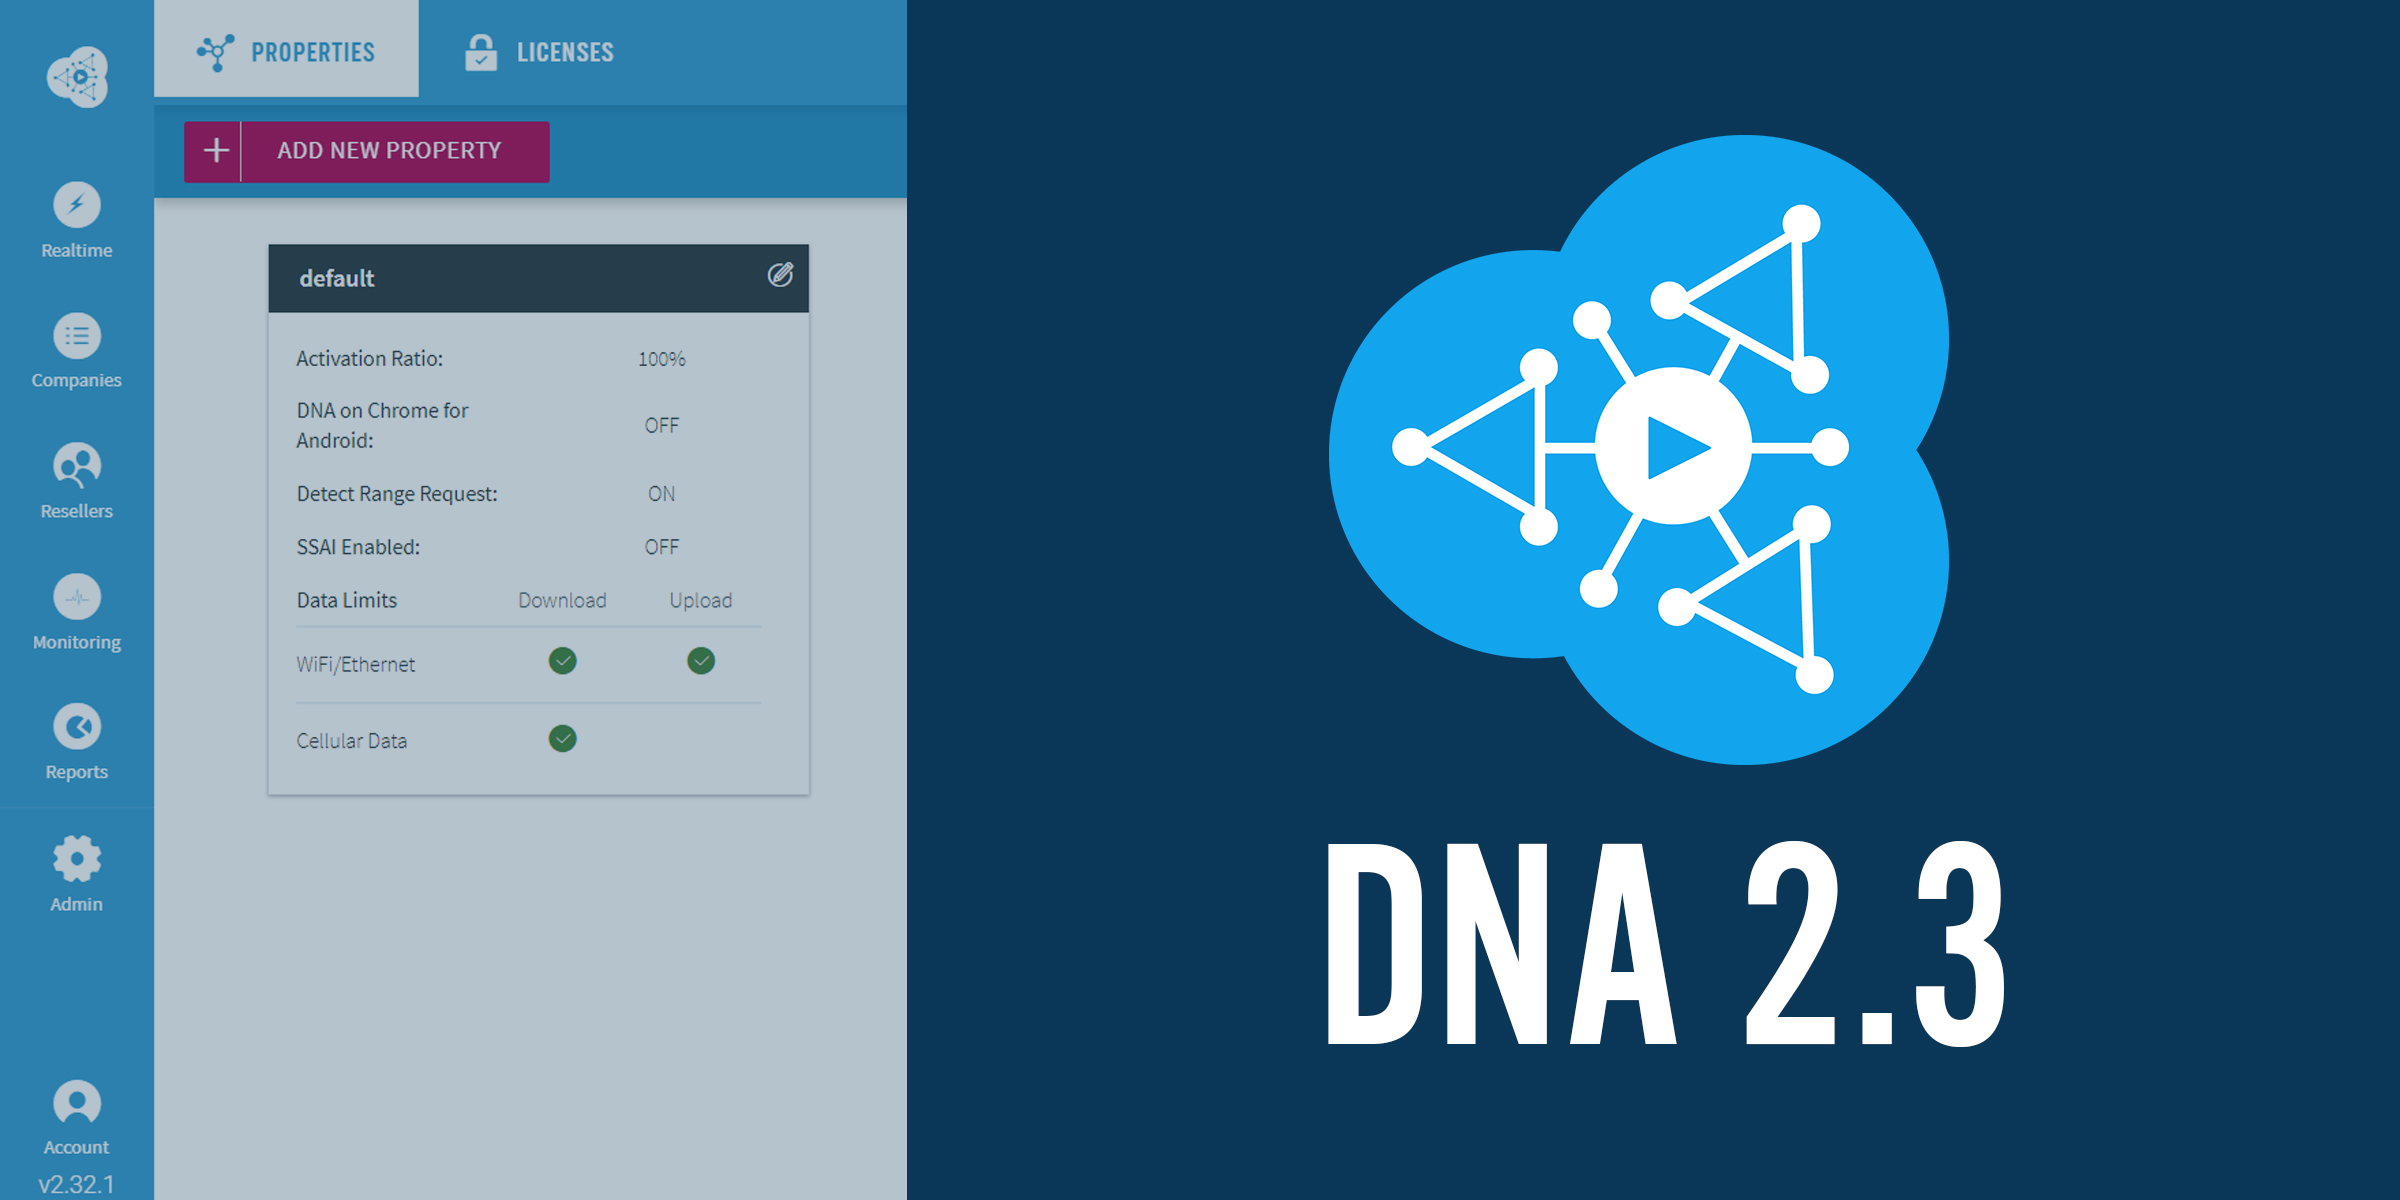 Streamroot dna 2.3